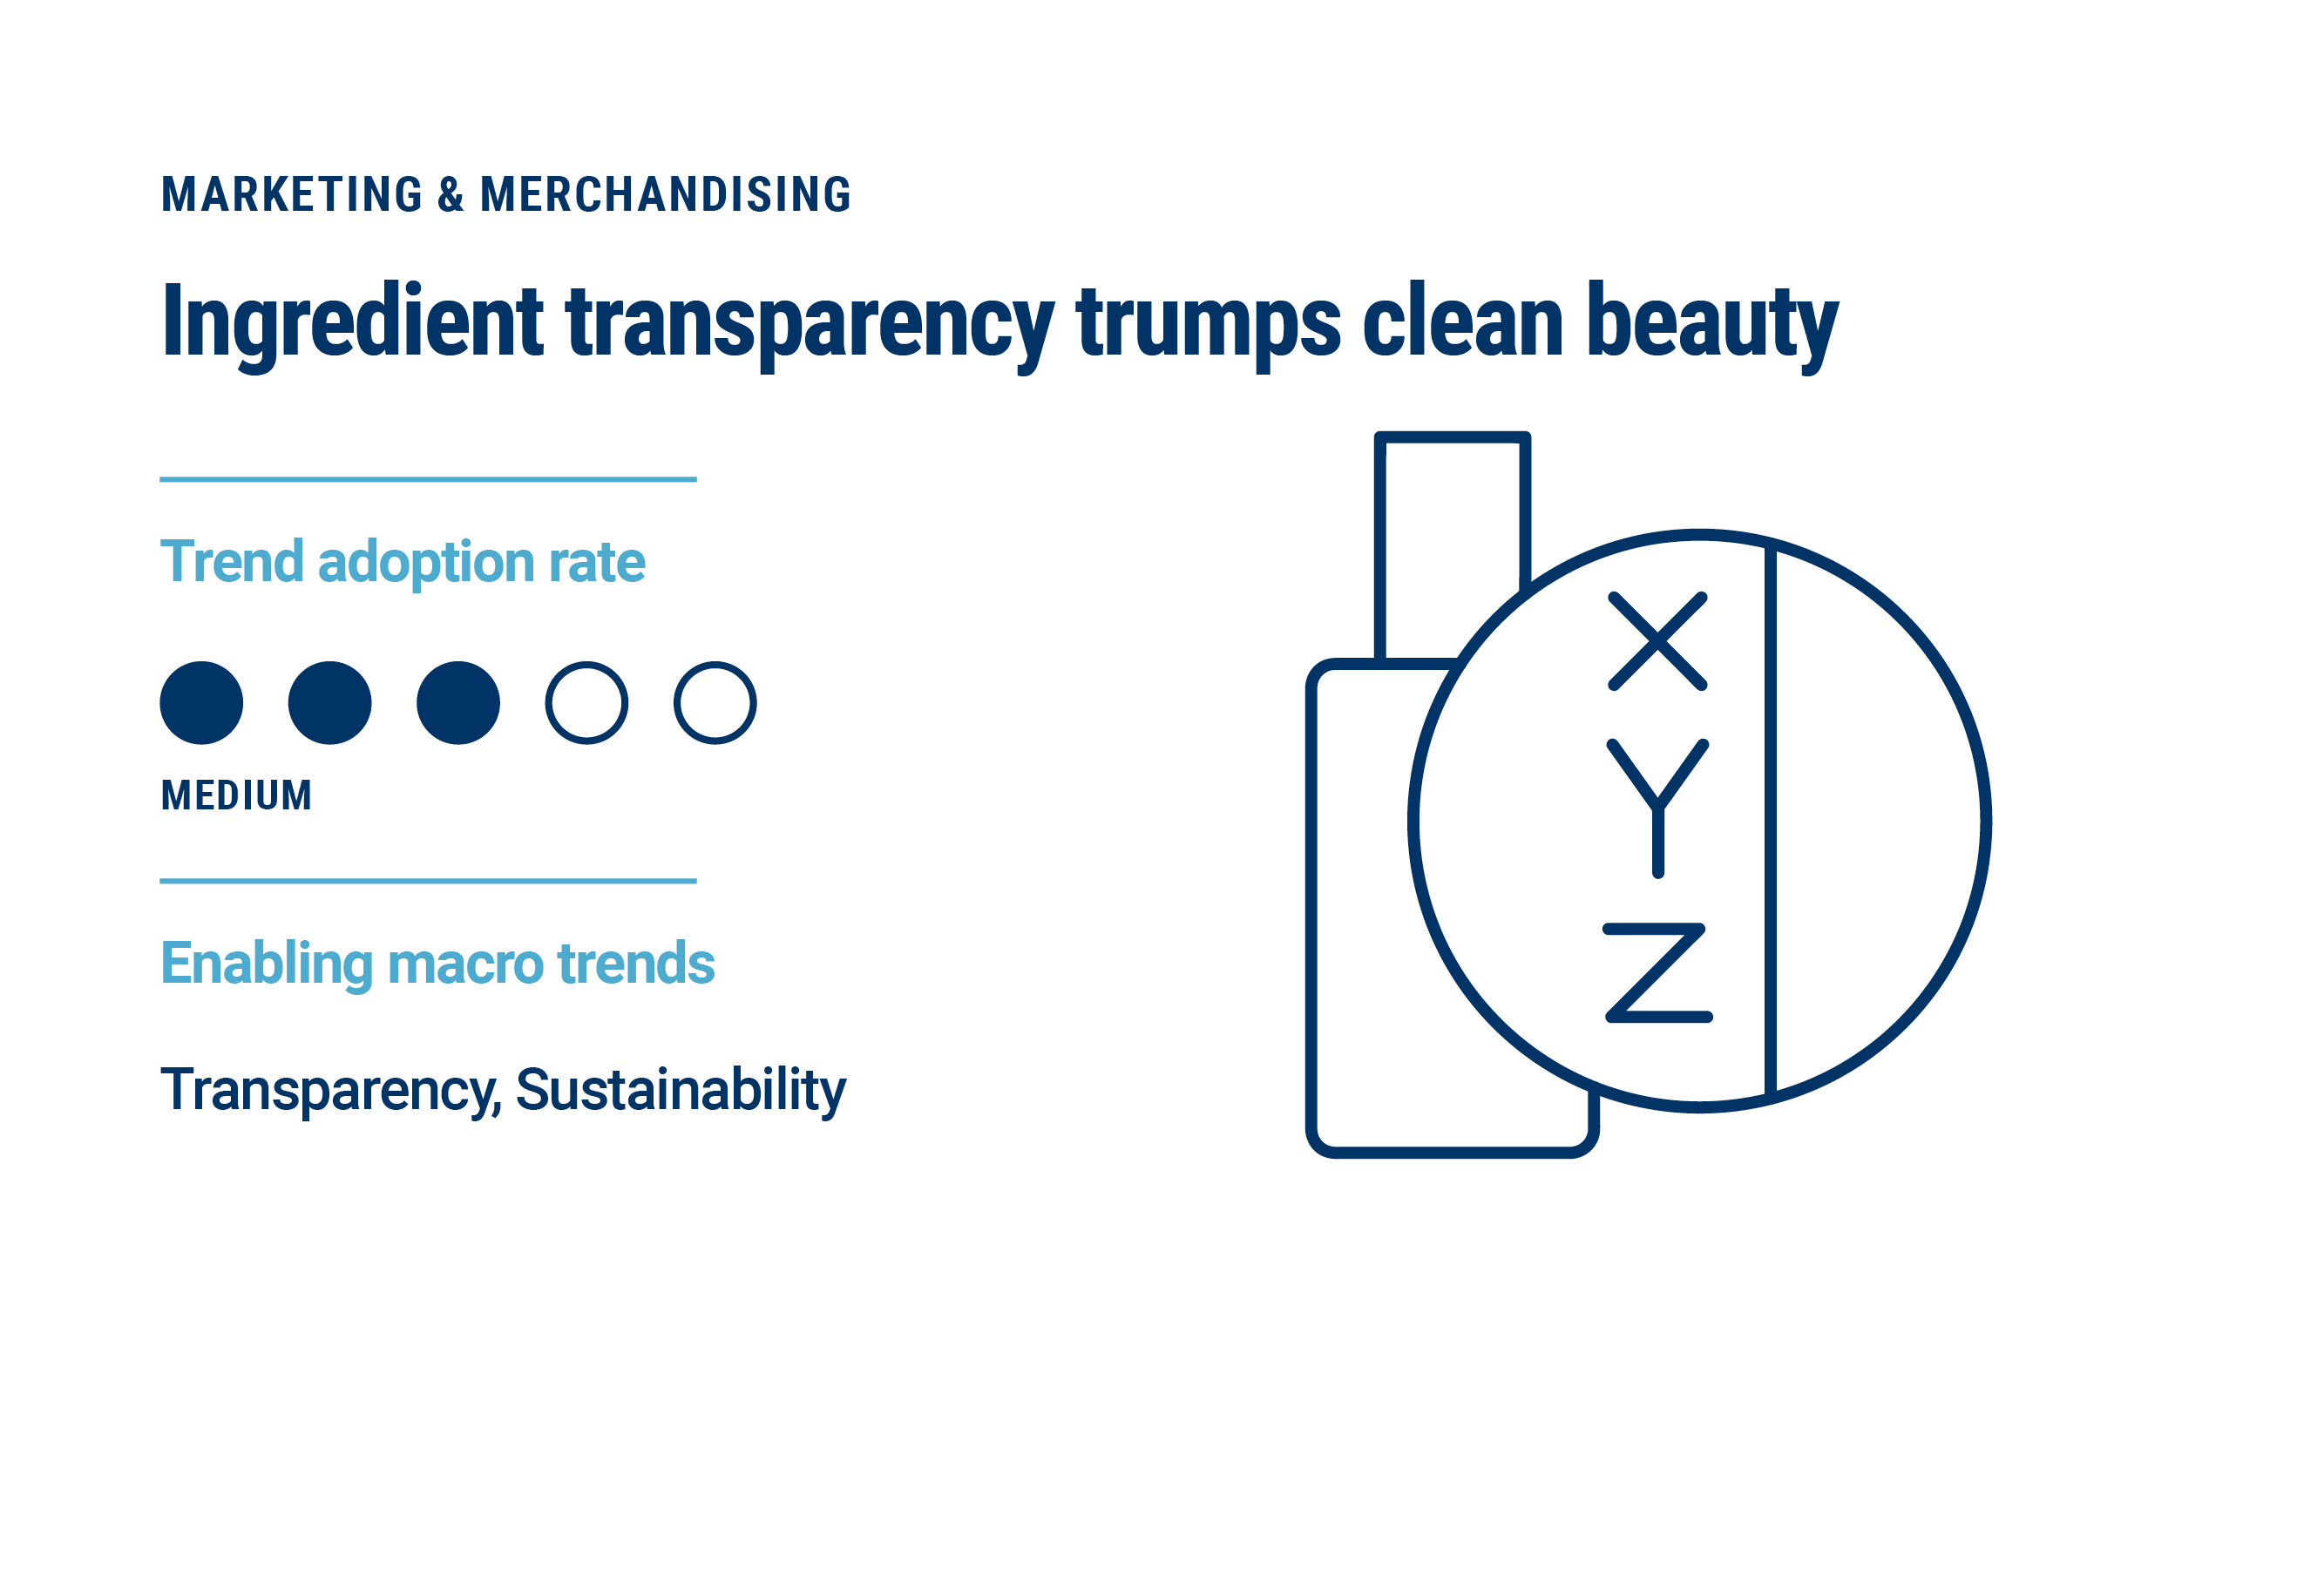 Graphic highlighting the beauty trend of ingredient transparency trumps clean beauty, with a medium trend adoption rate.